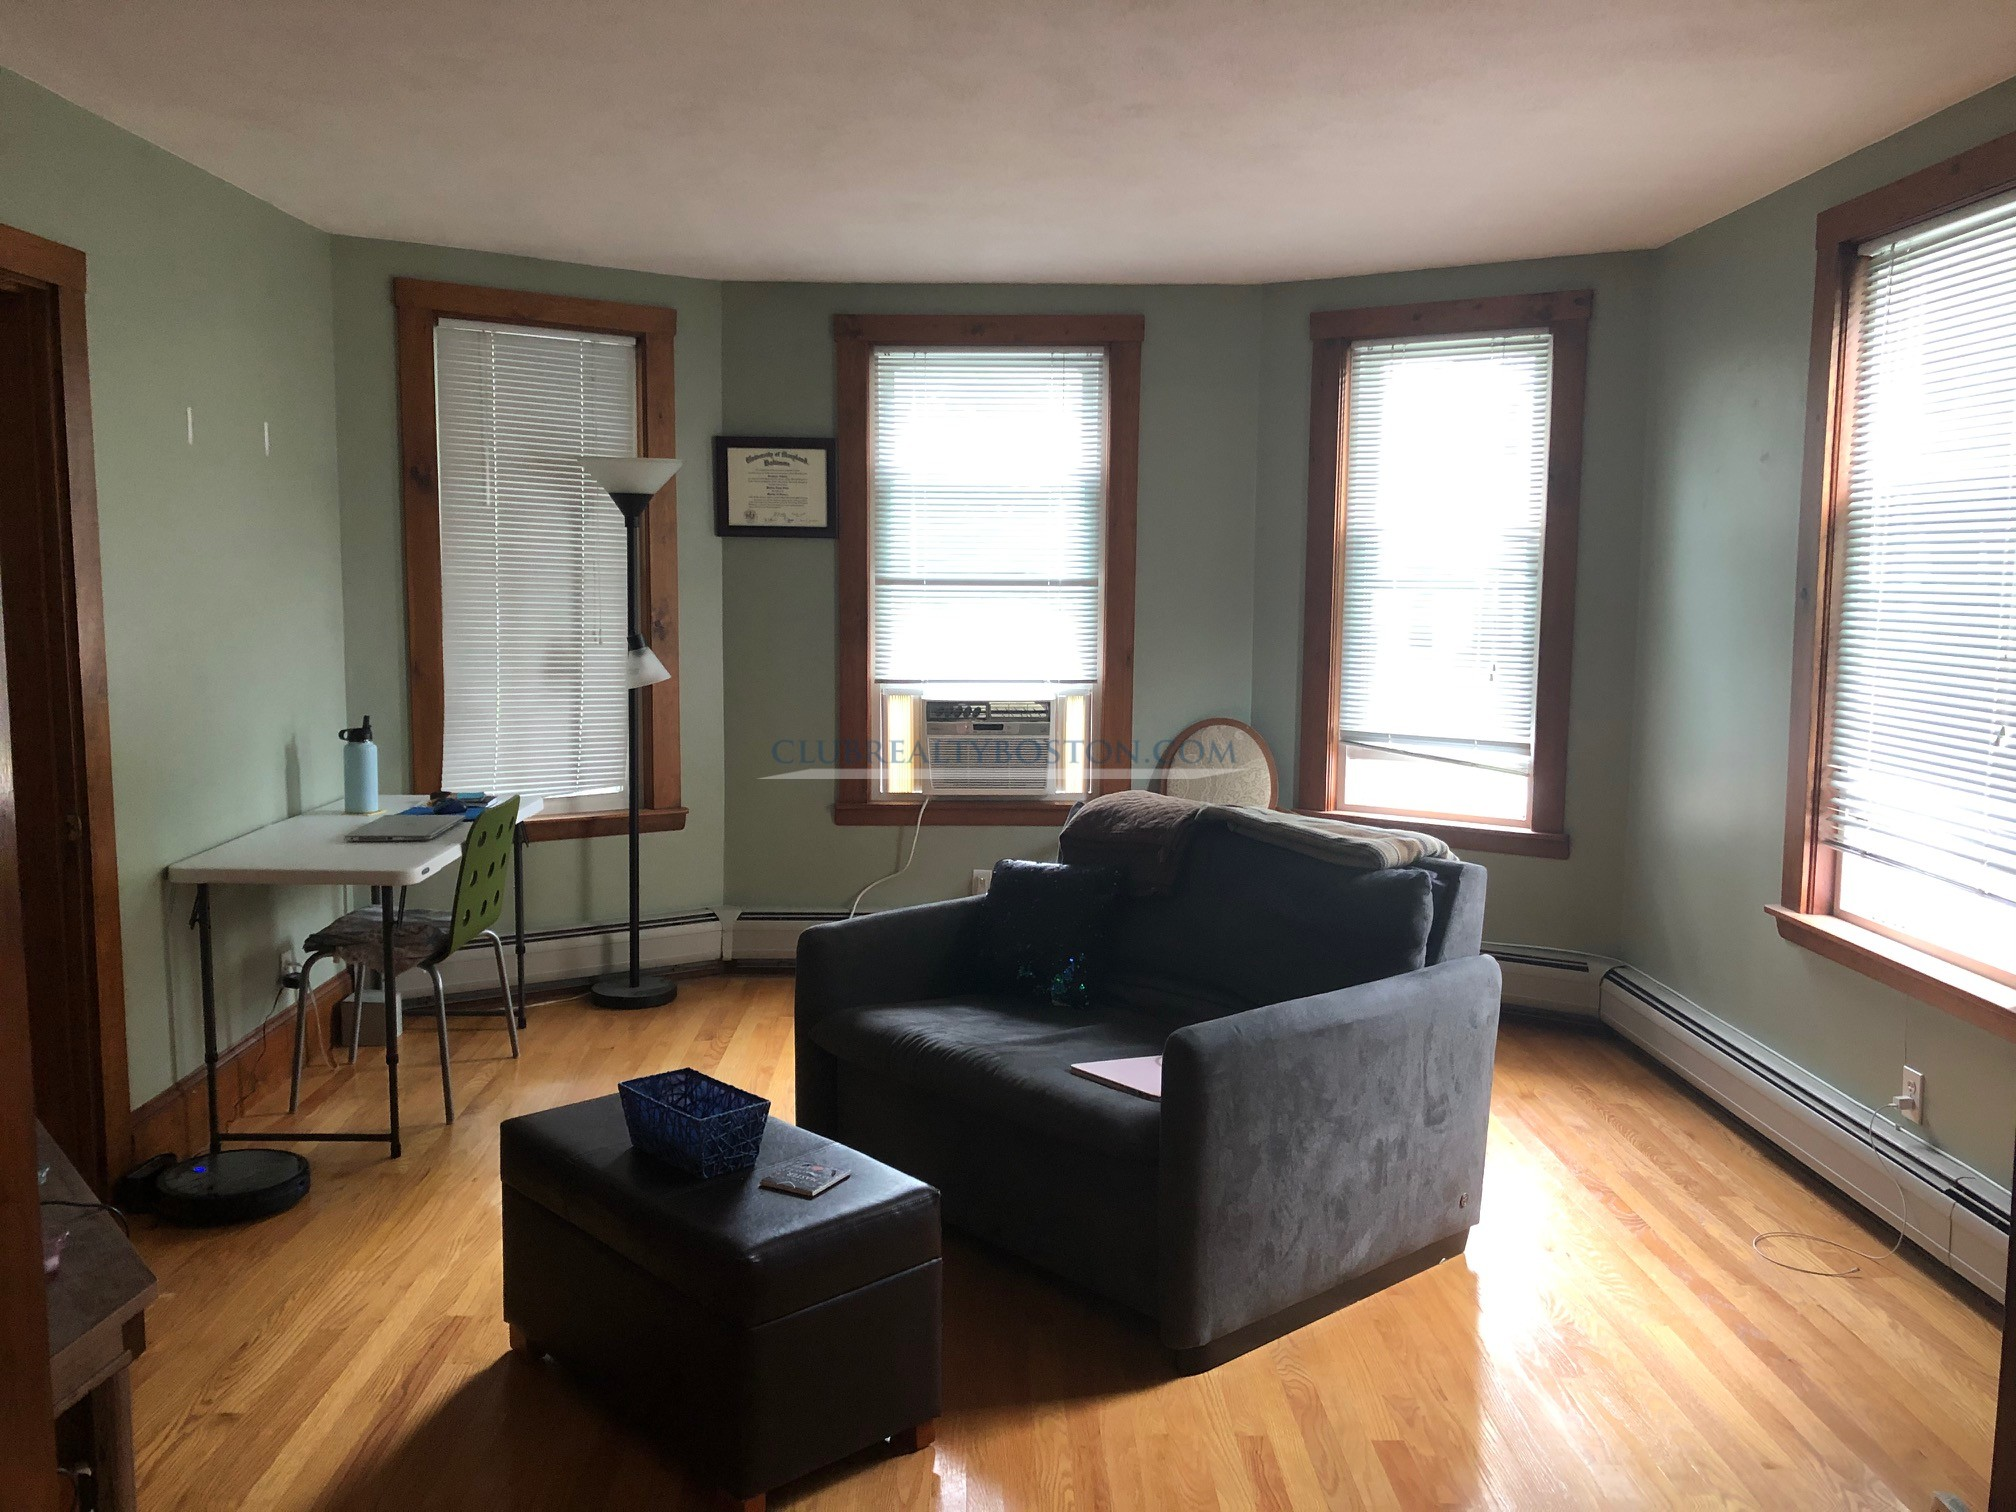 1 Bed, 1 Bath apartment in Watertown for $1,600